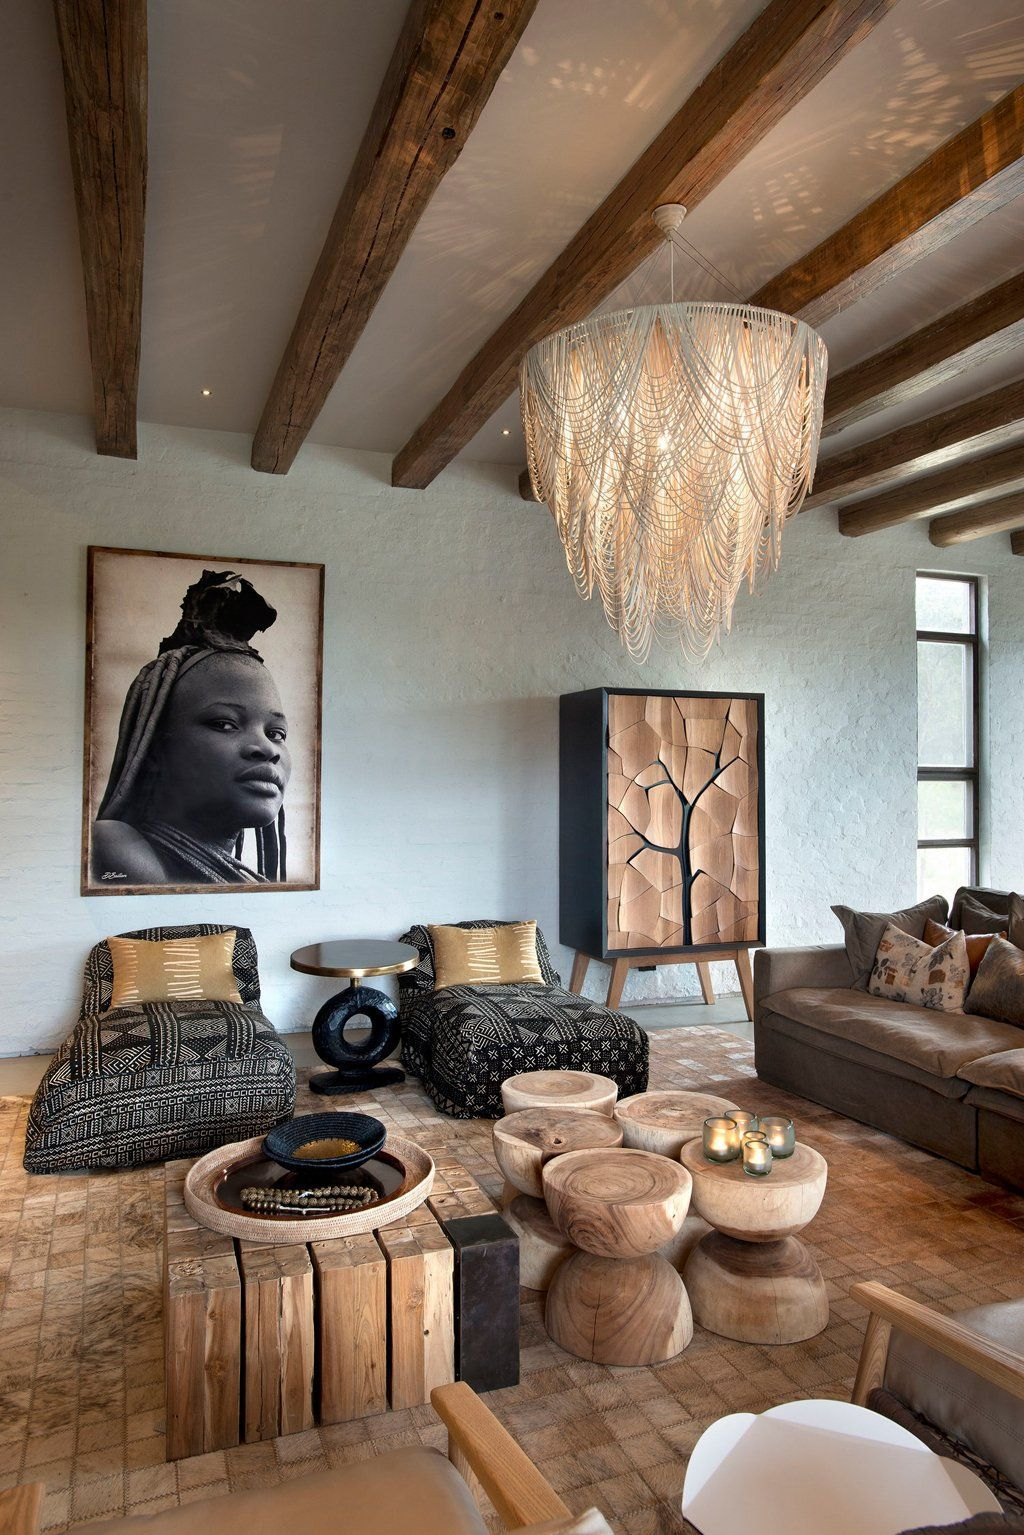 Dream Bush Home Waterberg South Africa Architect Nicholas Plewman Architects Interior D In 2020 Safari Living Rooms African Home Decor African Interior Design